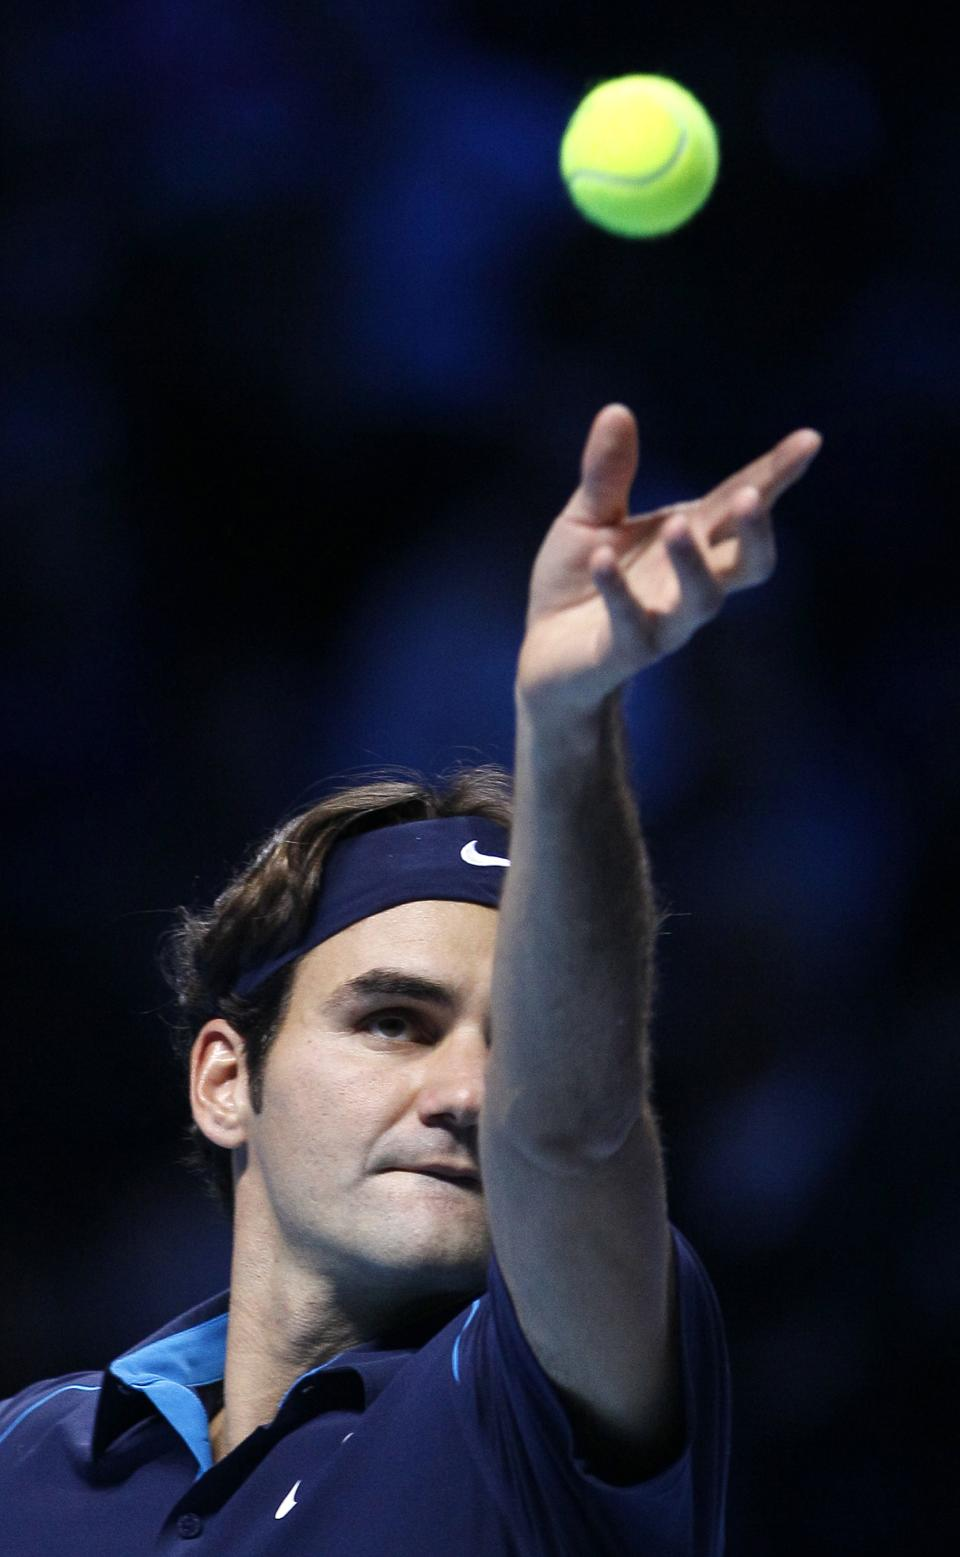 Roger Federer of Switzerland serves to Rafael Nadal of Spain during their round robin singles match at the ATP World Tour Finals, at the O2 arena in London, Tuesday, Nov. 22, 2011. (AP Photo/Kirsty Wigglesworth)